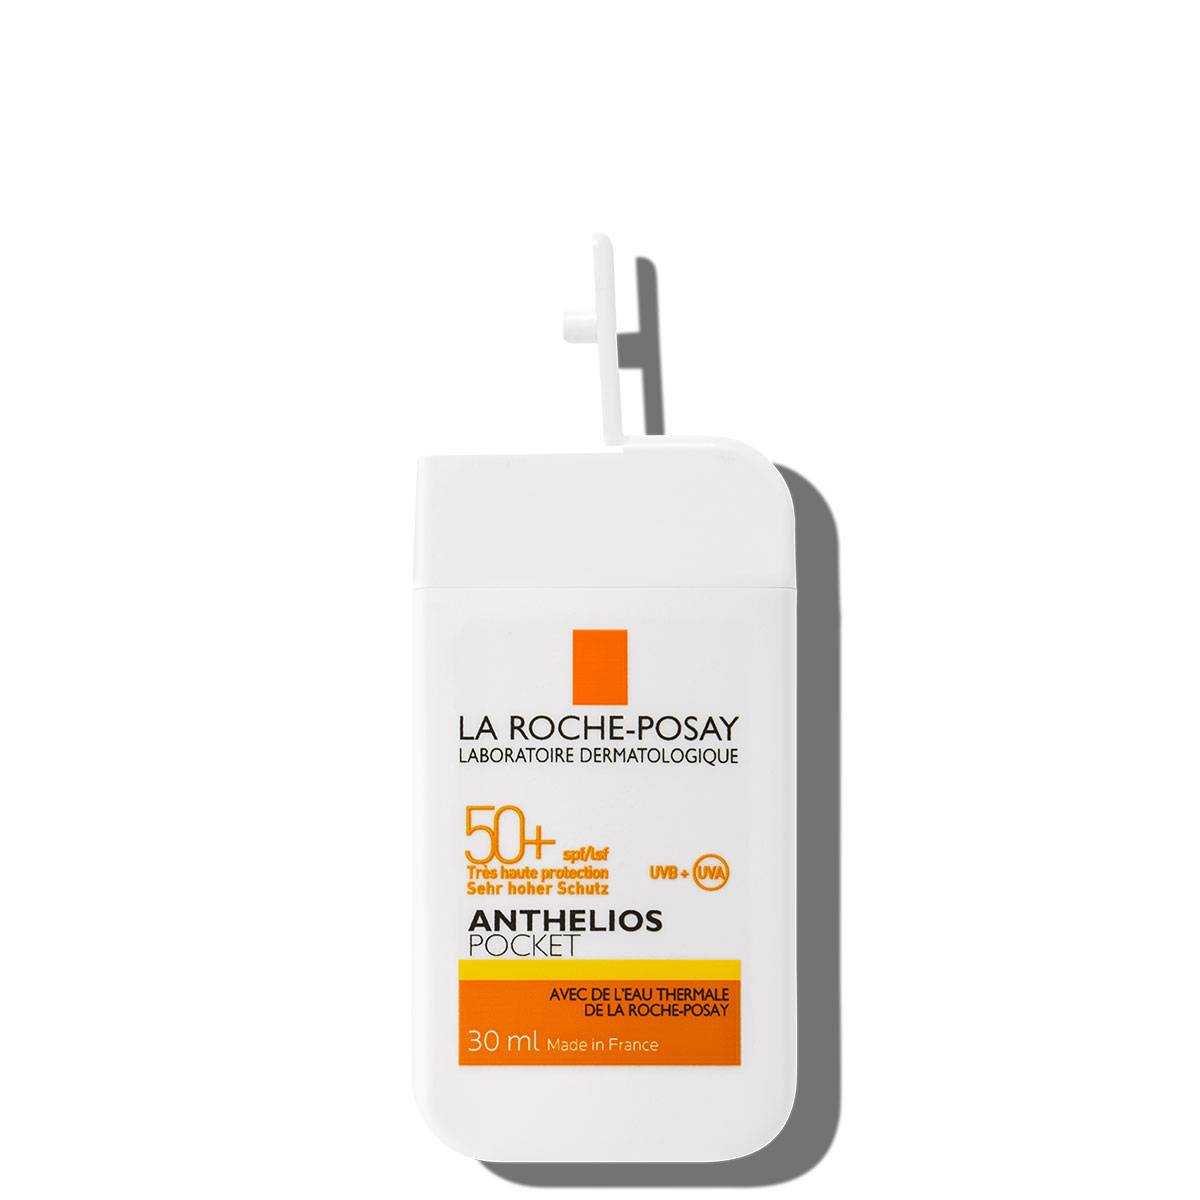 La Roche Posay ProductPage Sun Anthelios Pocket Lotion Spf50 30ml 3015